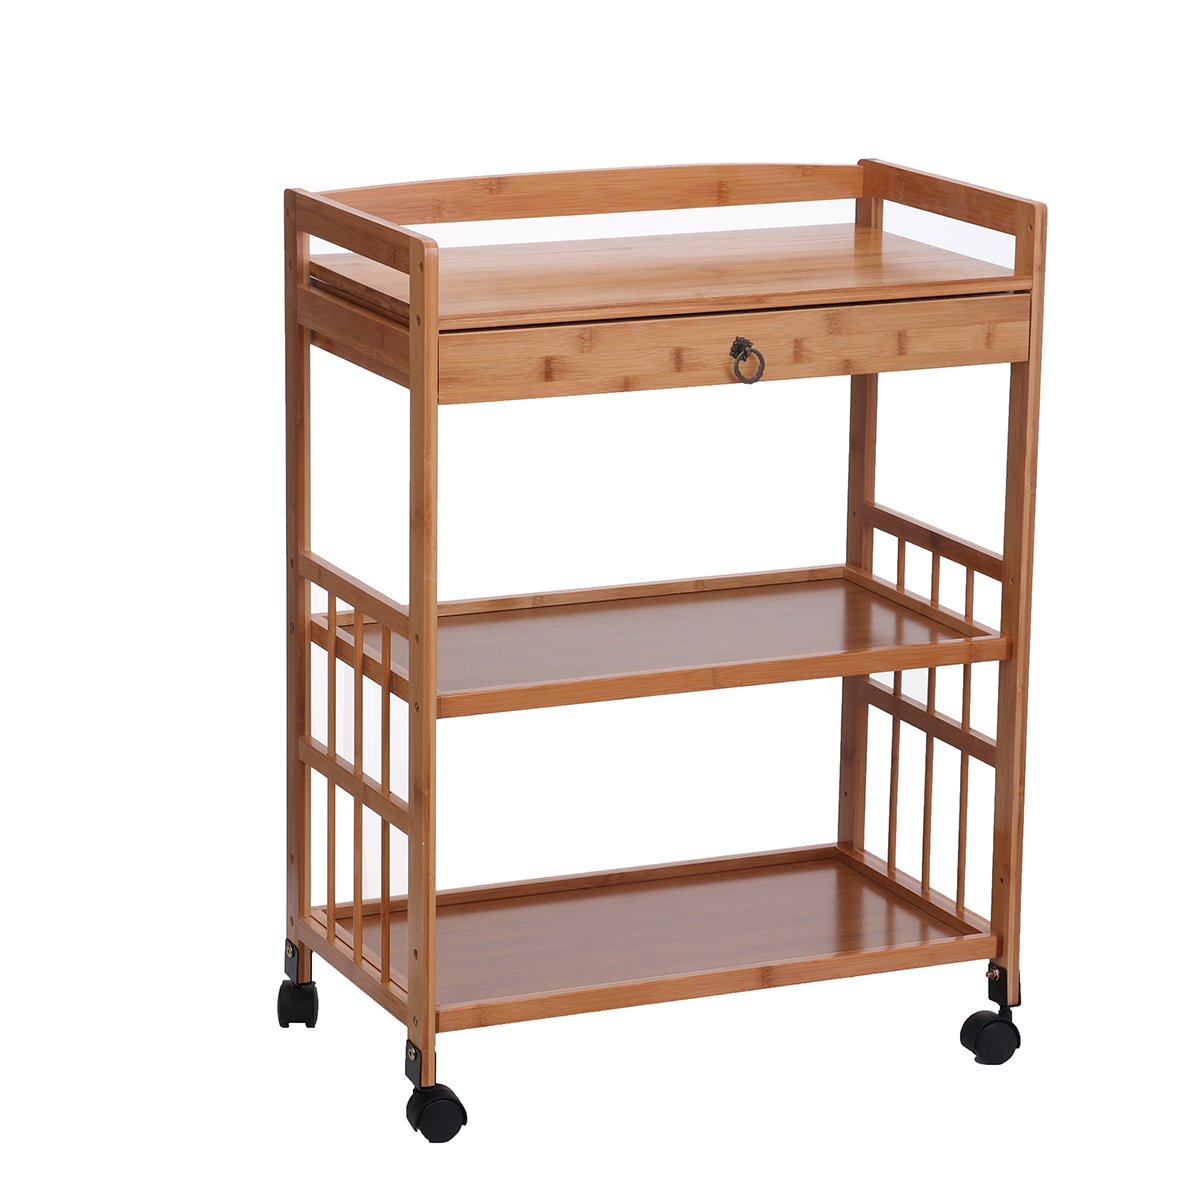 Kitchen Cart On Wheels For Chefs Outdoor Coffee Wine And Food Microwave Cart Kitchen Island On Wheels Rolling Cart Kitchen Appliance Utility Cart Walmart Com Walmart Com